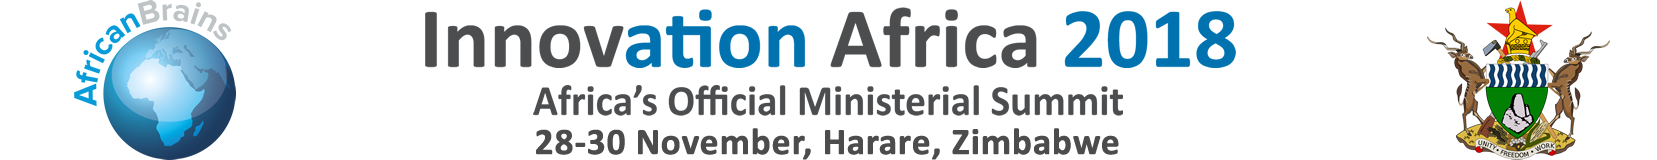 Africa's Official Ministerial Summit - November 2018, Harare, Zimbabwe